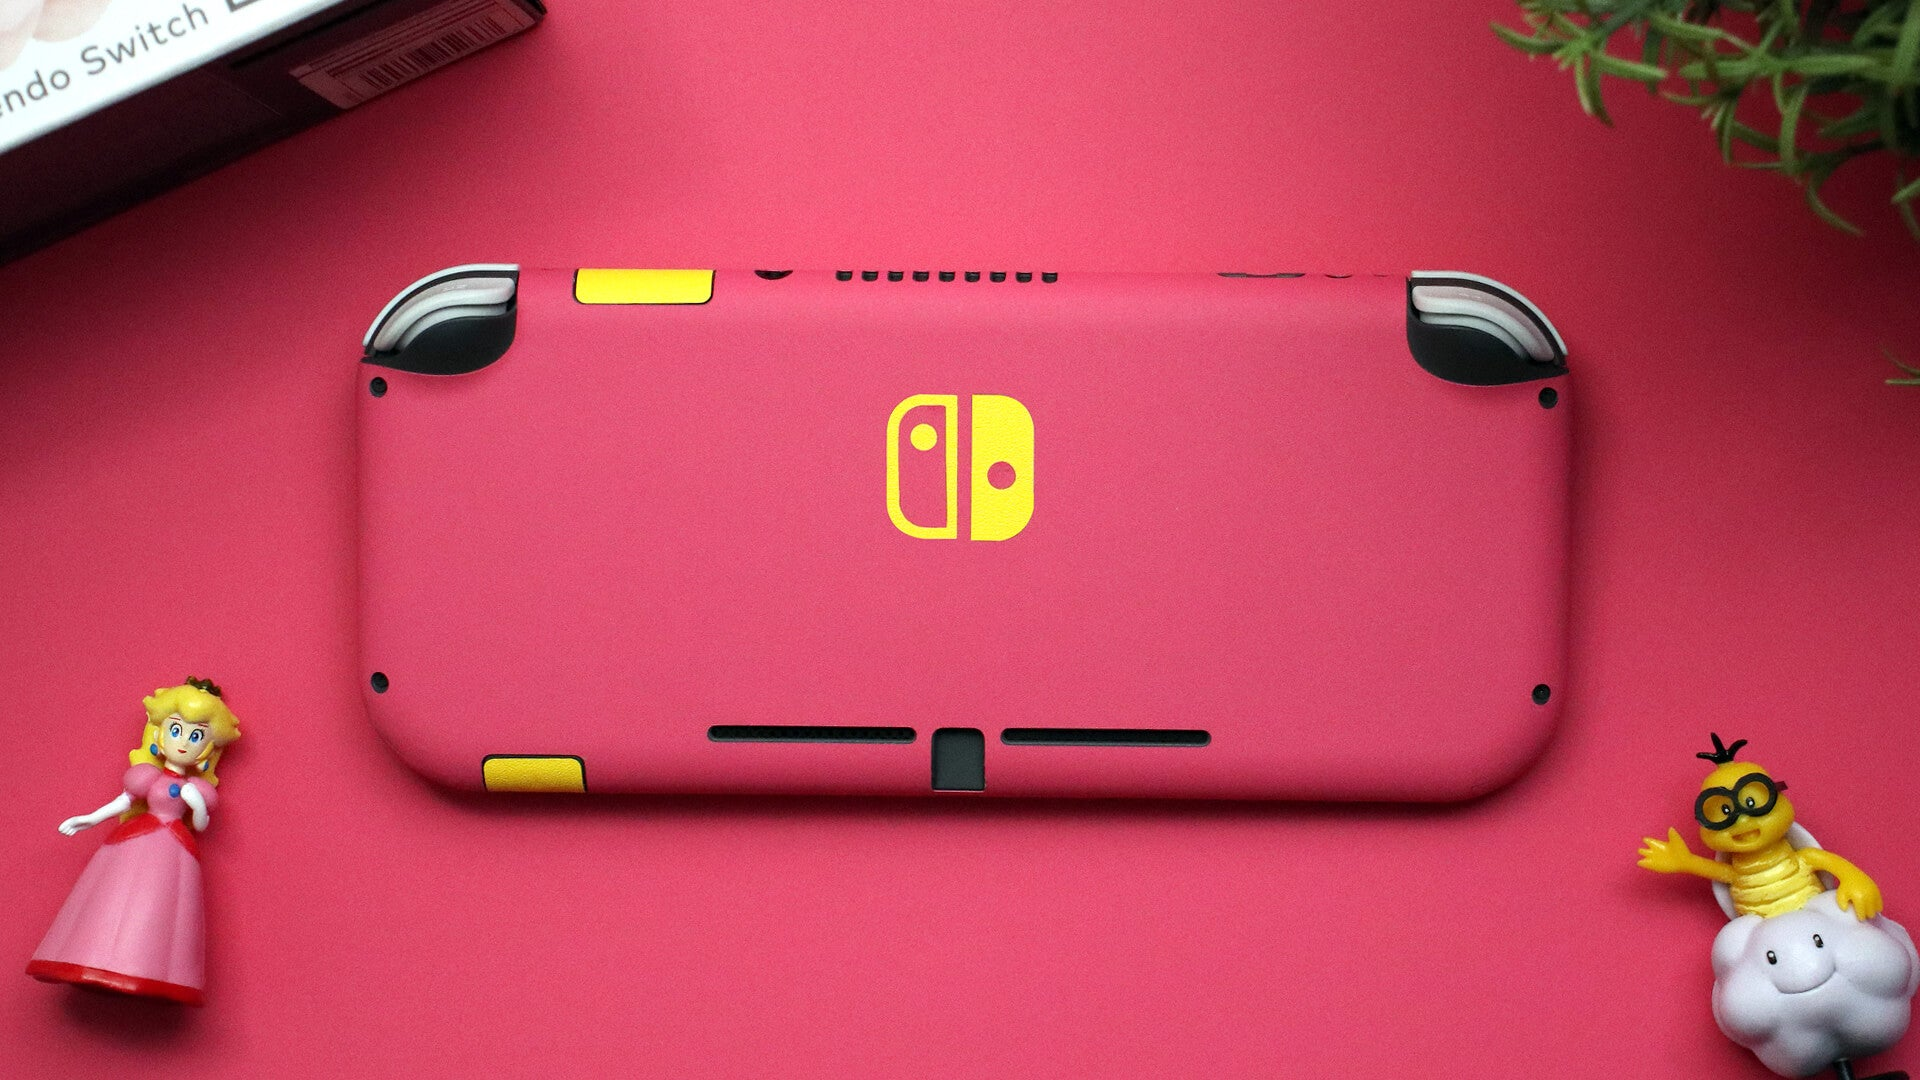 Nintendo Switch Lite Textured Matt Pink Skins